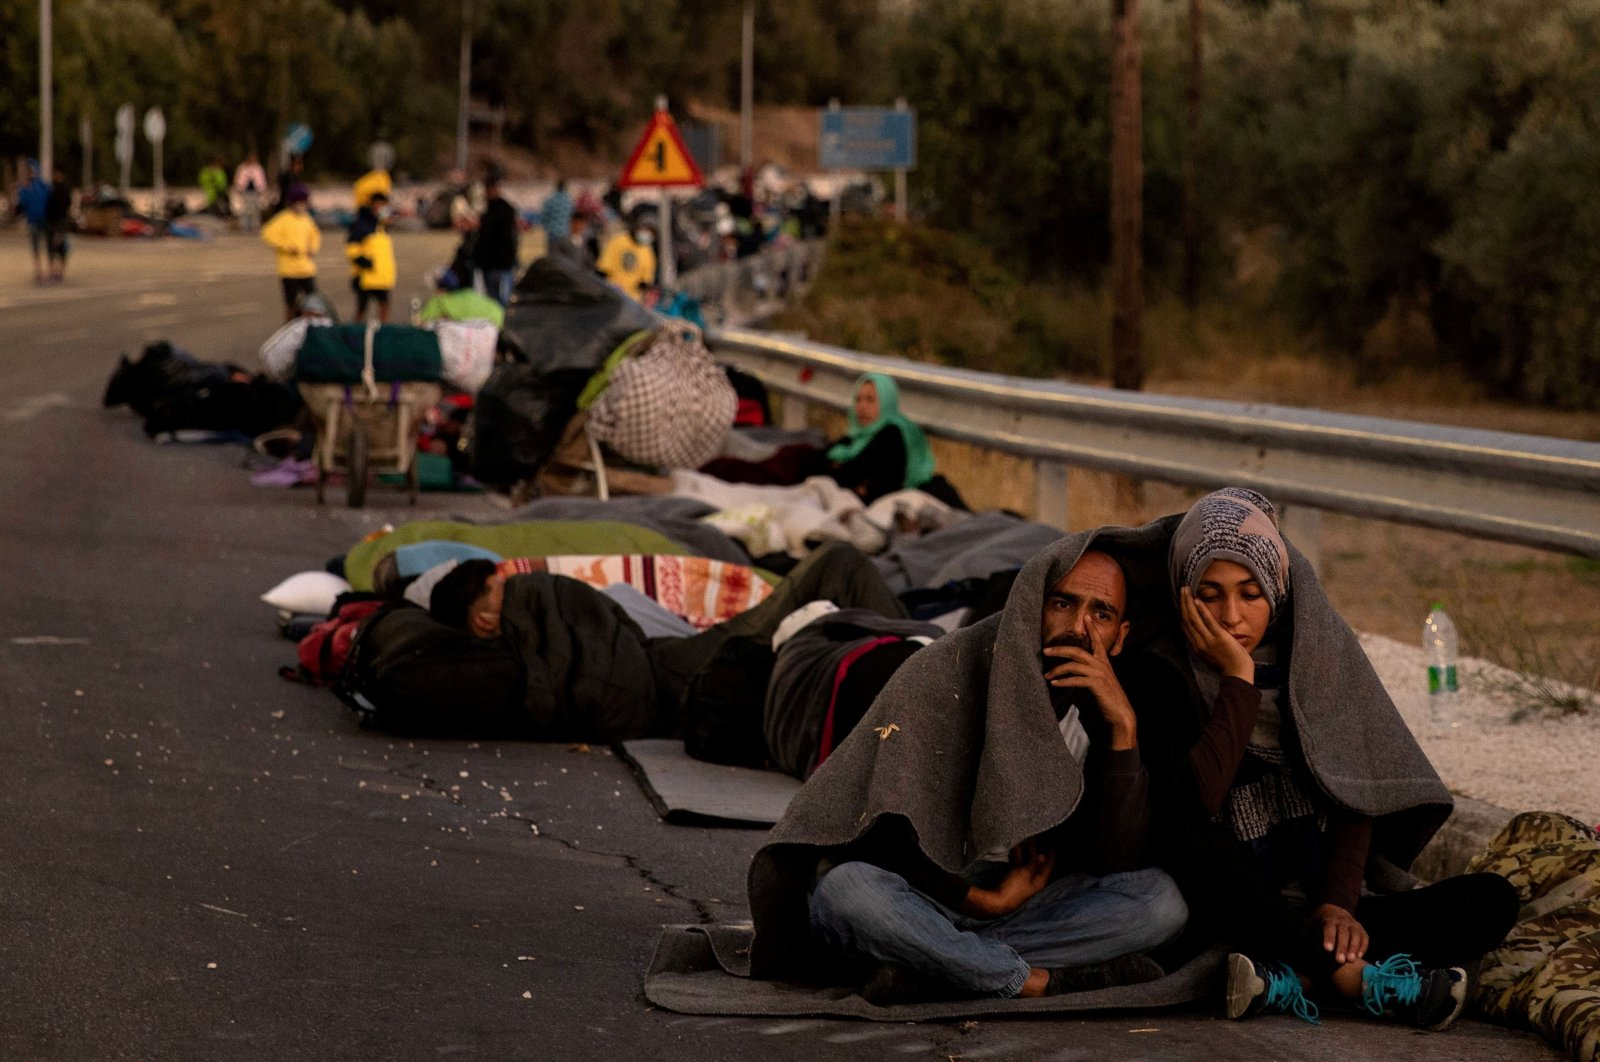 A couple sits covered with a blanket as refugees and migrants camp on a road following a fire at the Moria camp on the island of Lesbos, Sept. 10, 2020. (REUTERS Photo)